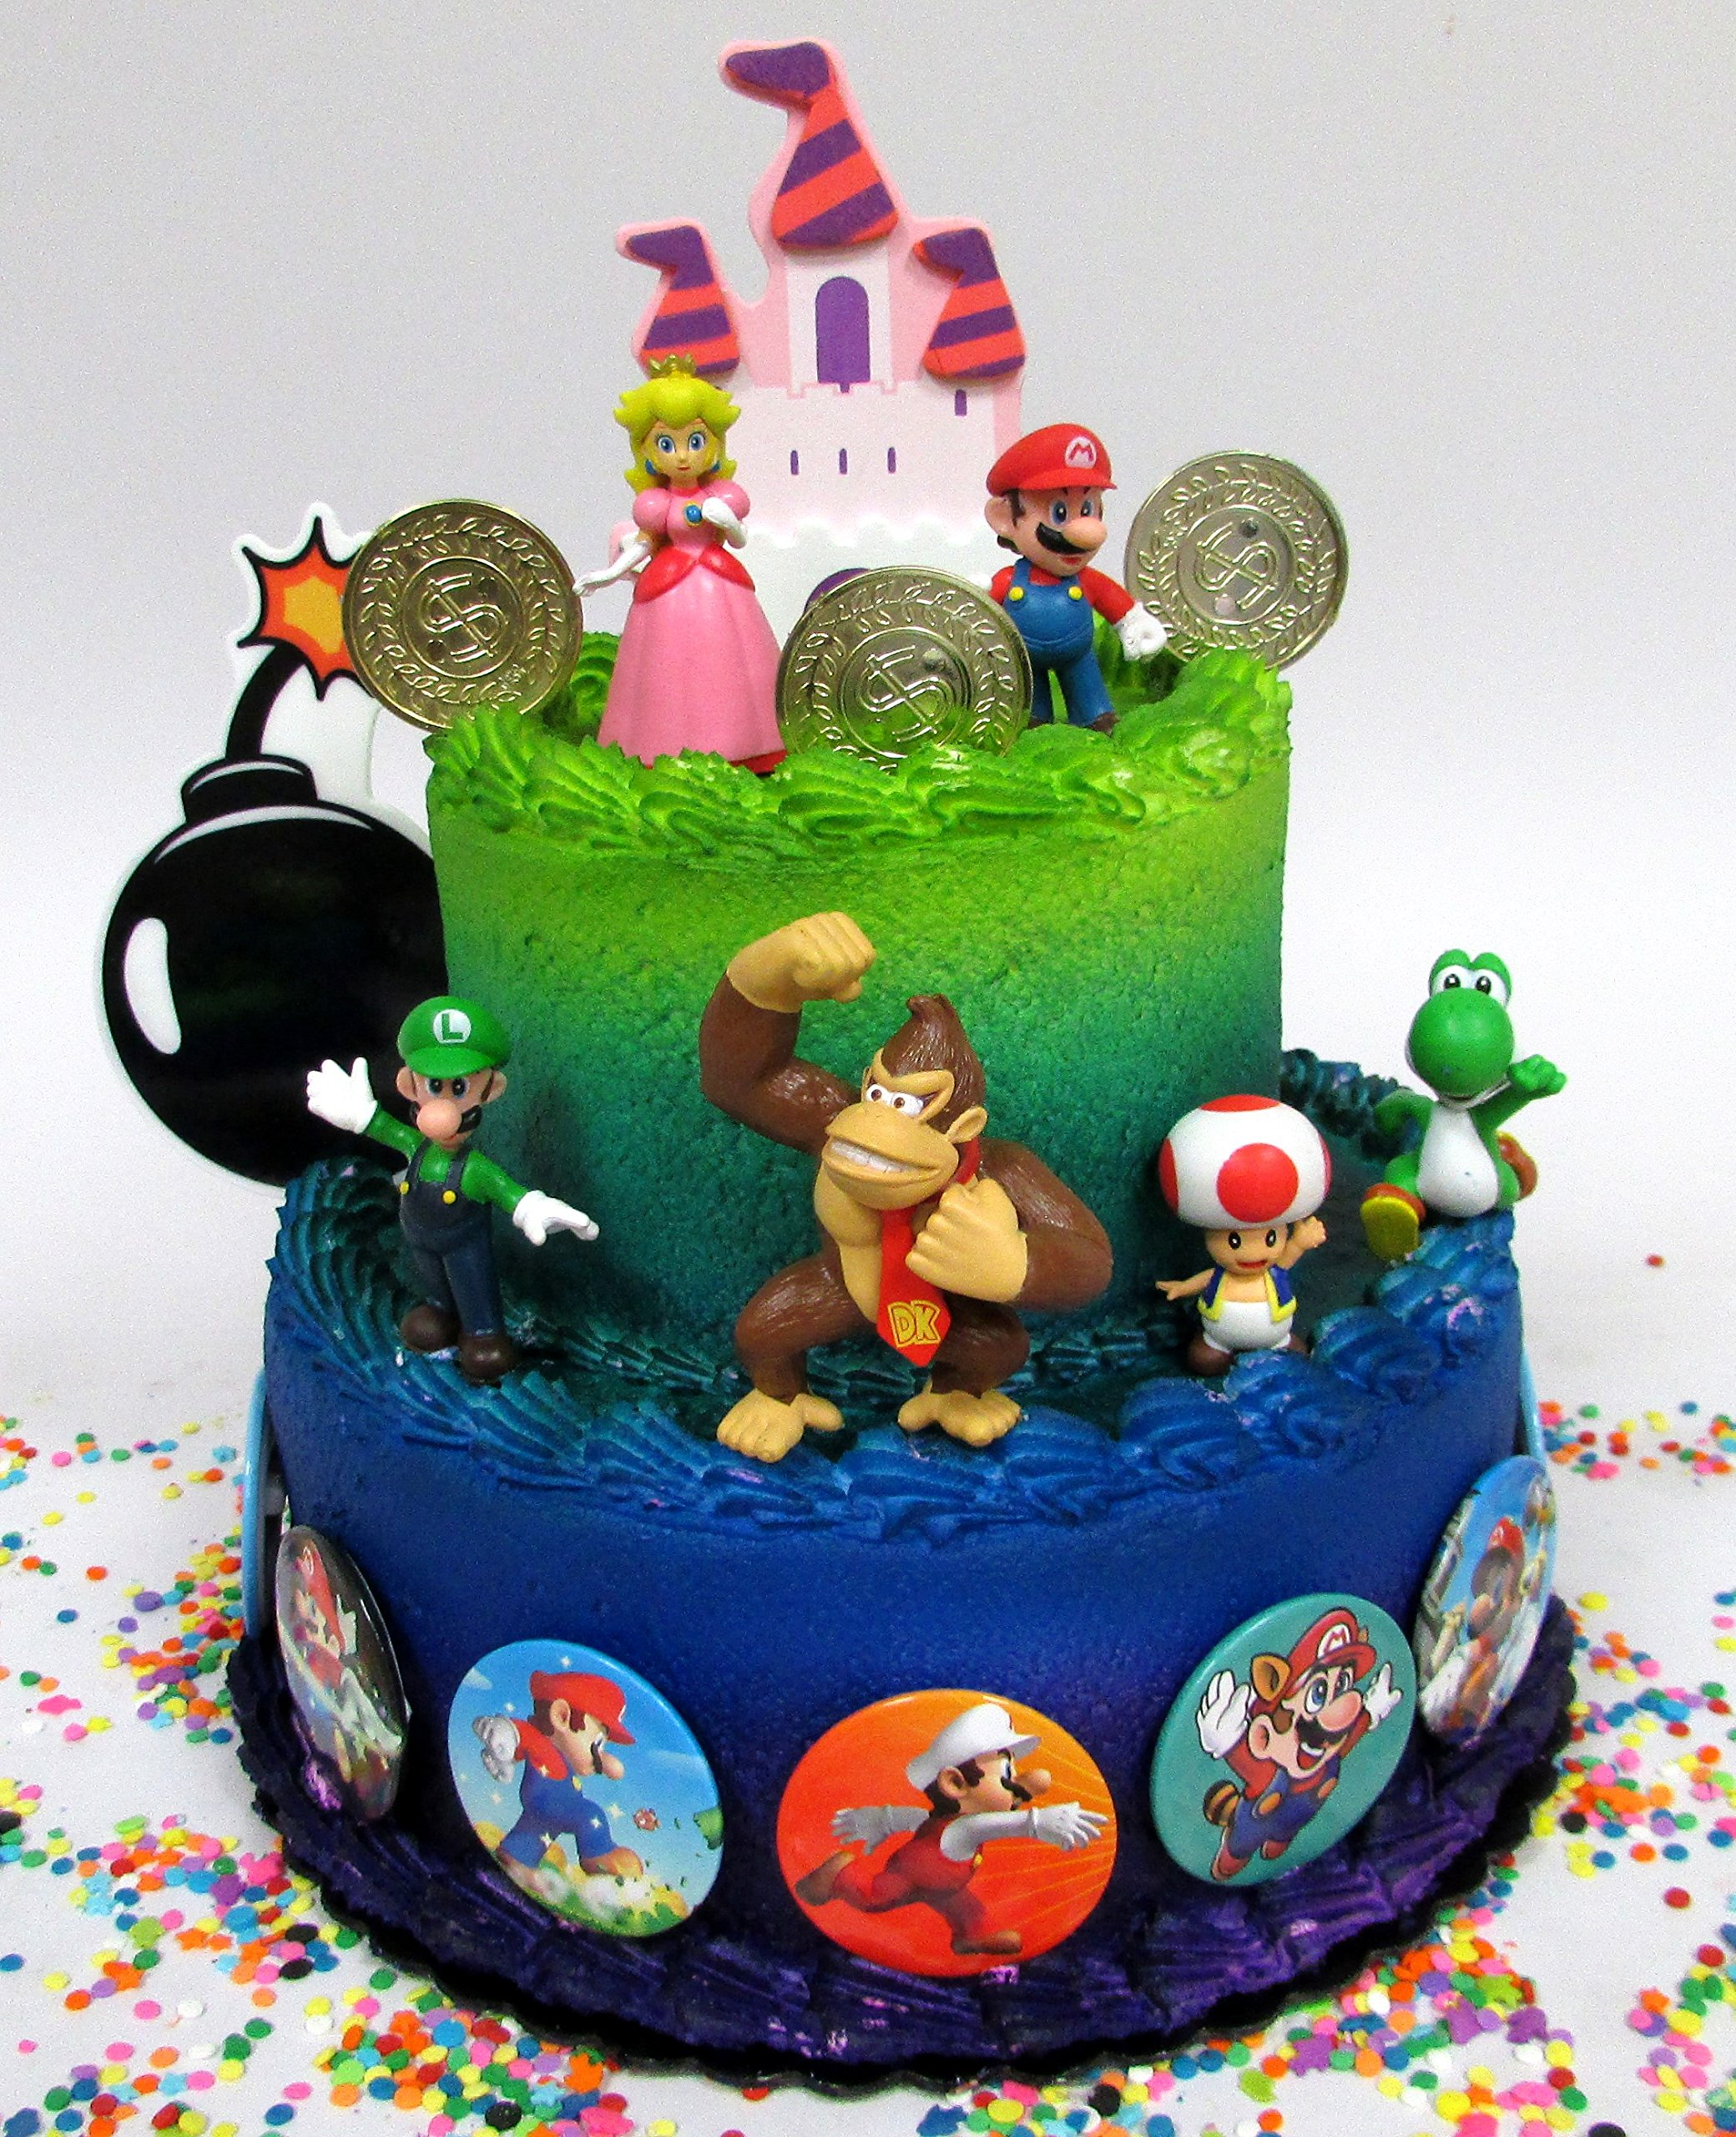 Mario Brothers 23 Piece Birthday Cake Topper Set Featuring Mario Castle, Bomb, Mario Coins, 6 Mario Figures Including Mario, Luigi, Princess Peach, Toad, Yoshi, Donkey Kong, and 12 Mario 1'' Decorative Buttons by Super Mario Brothers